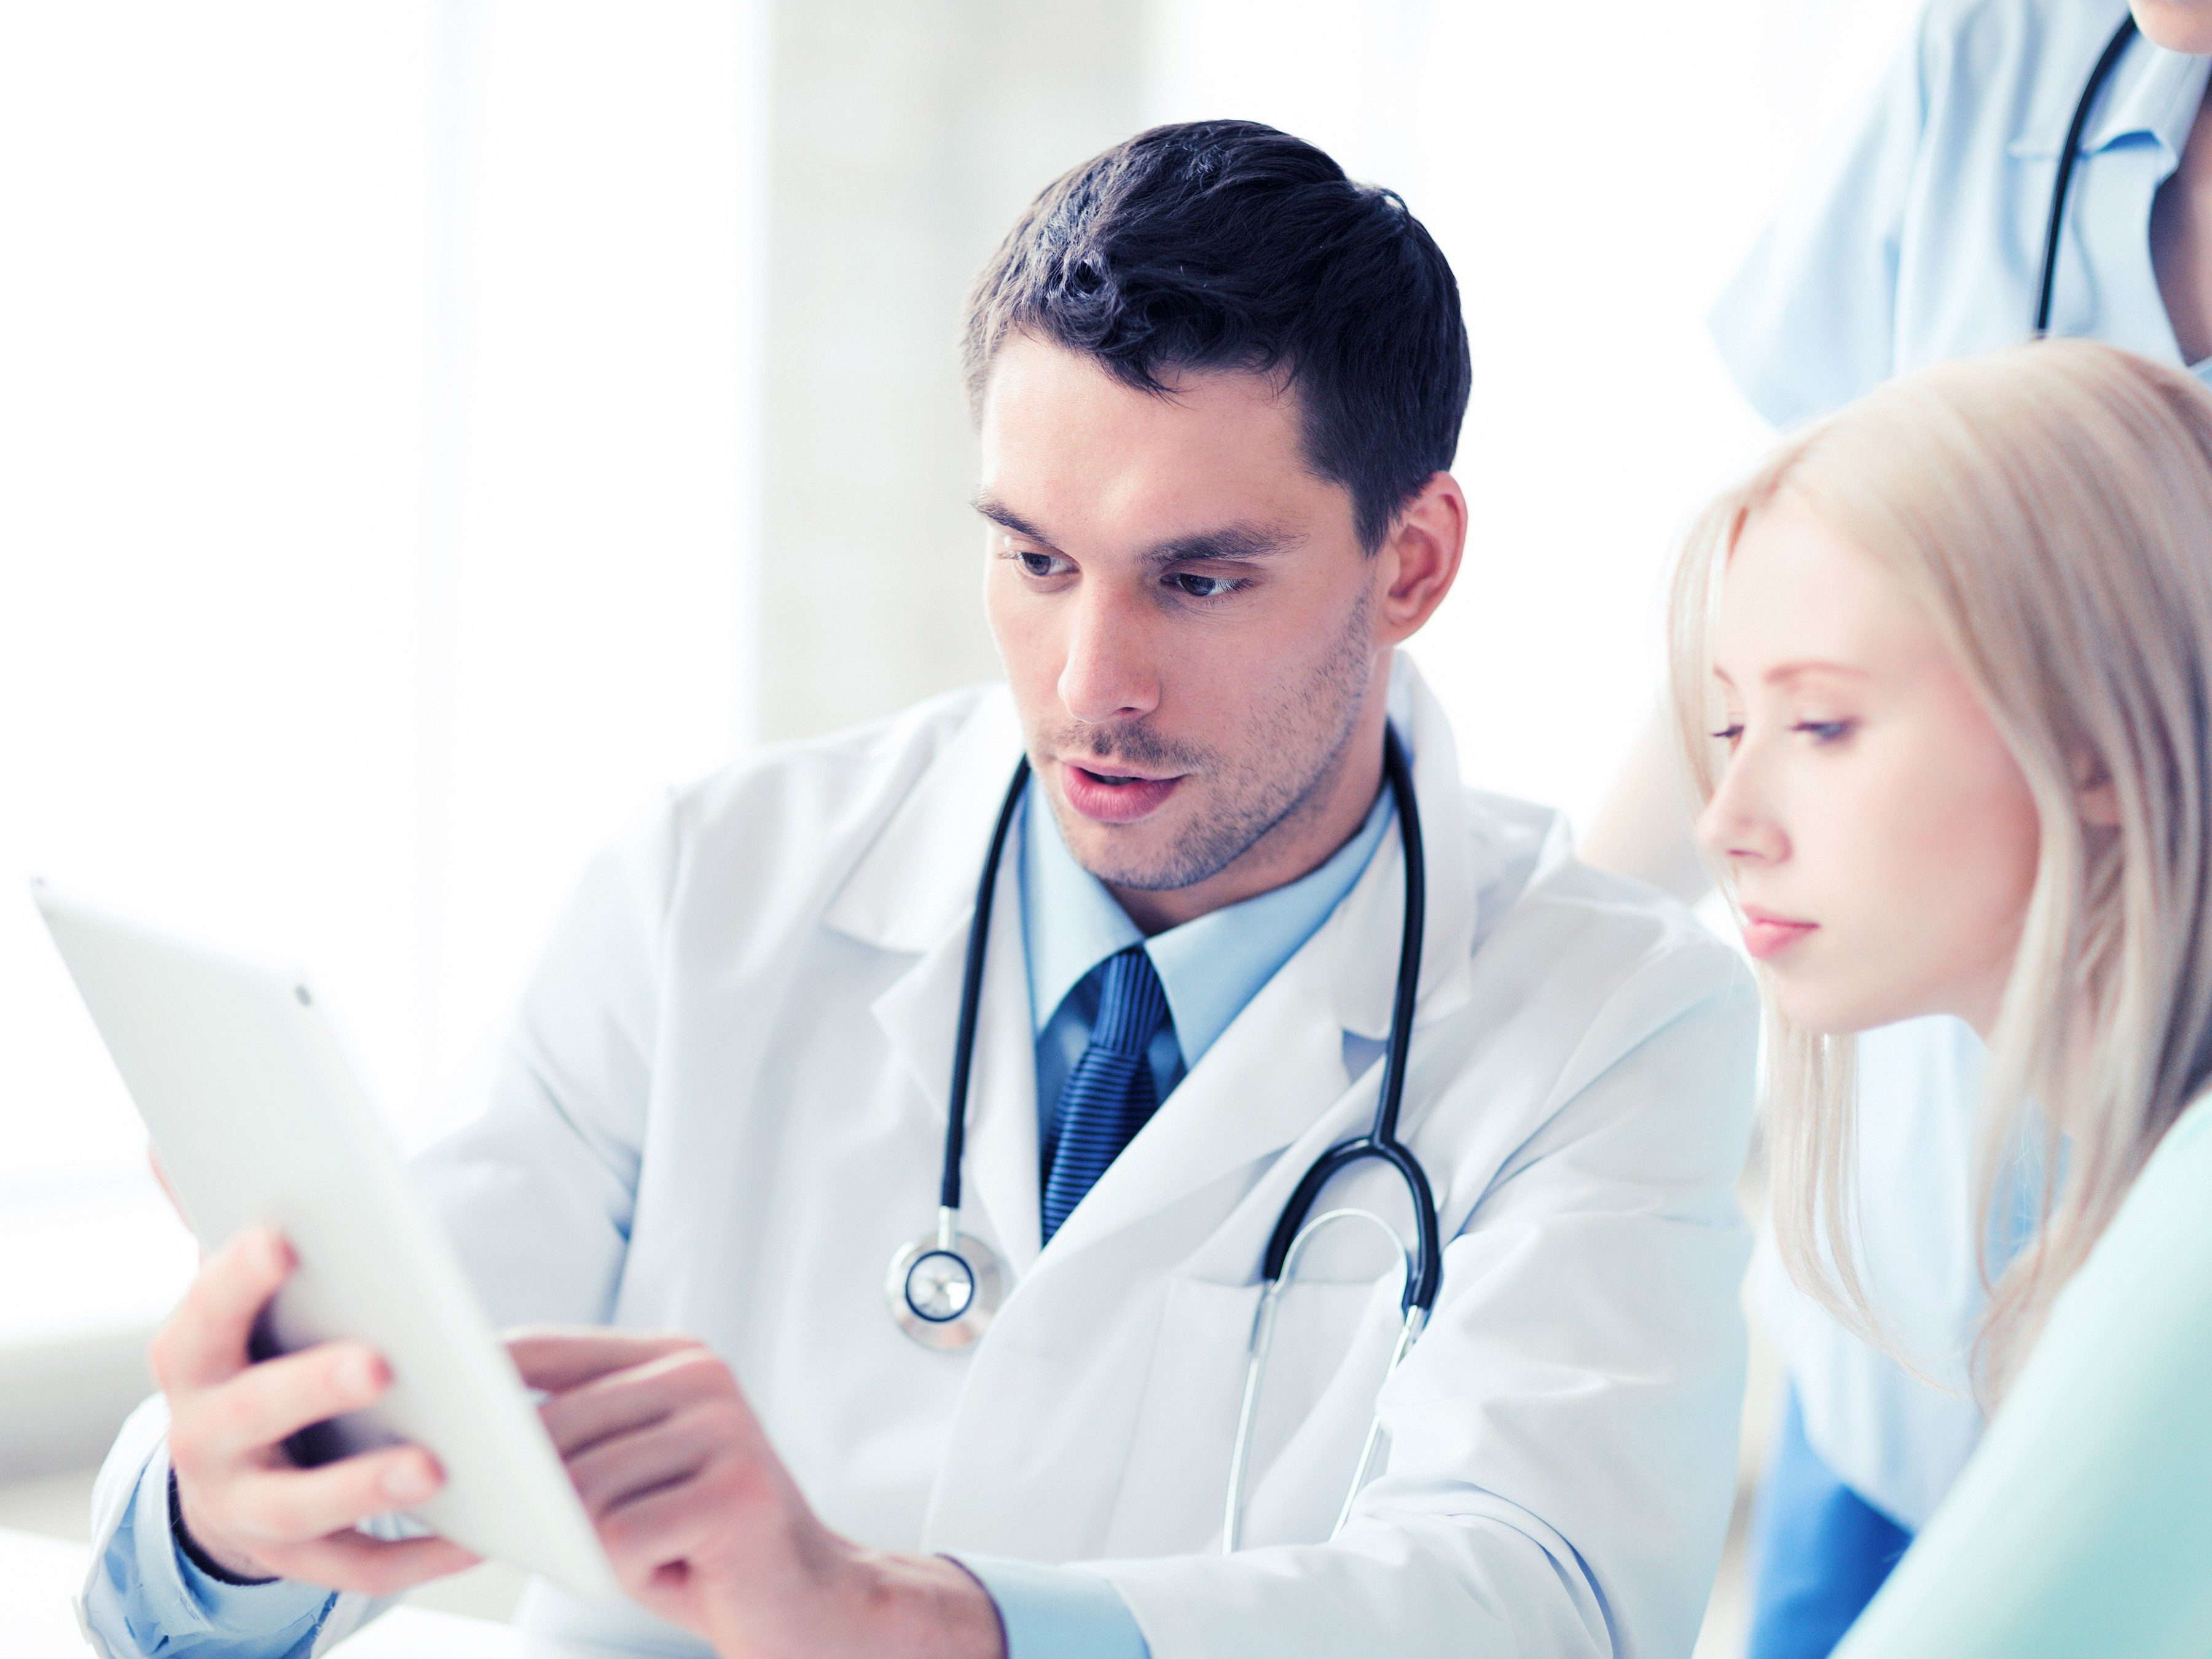 1. Understand Why Your Medical Screening Test is Necessary